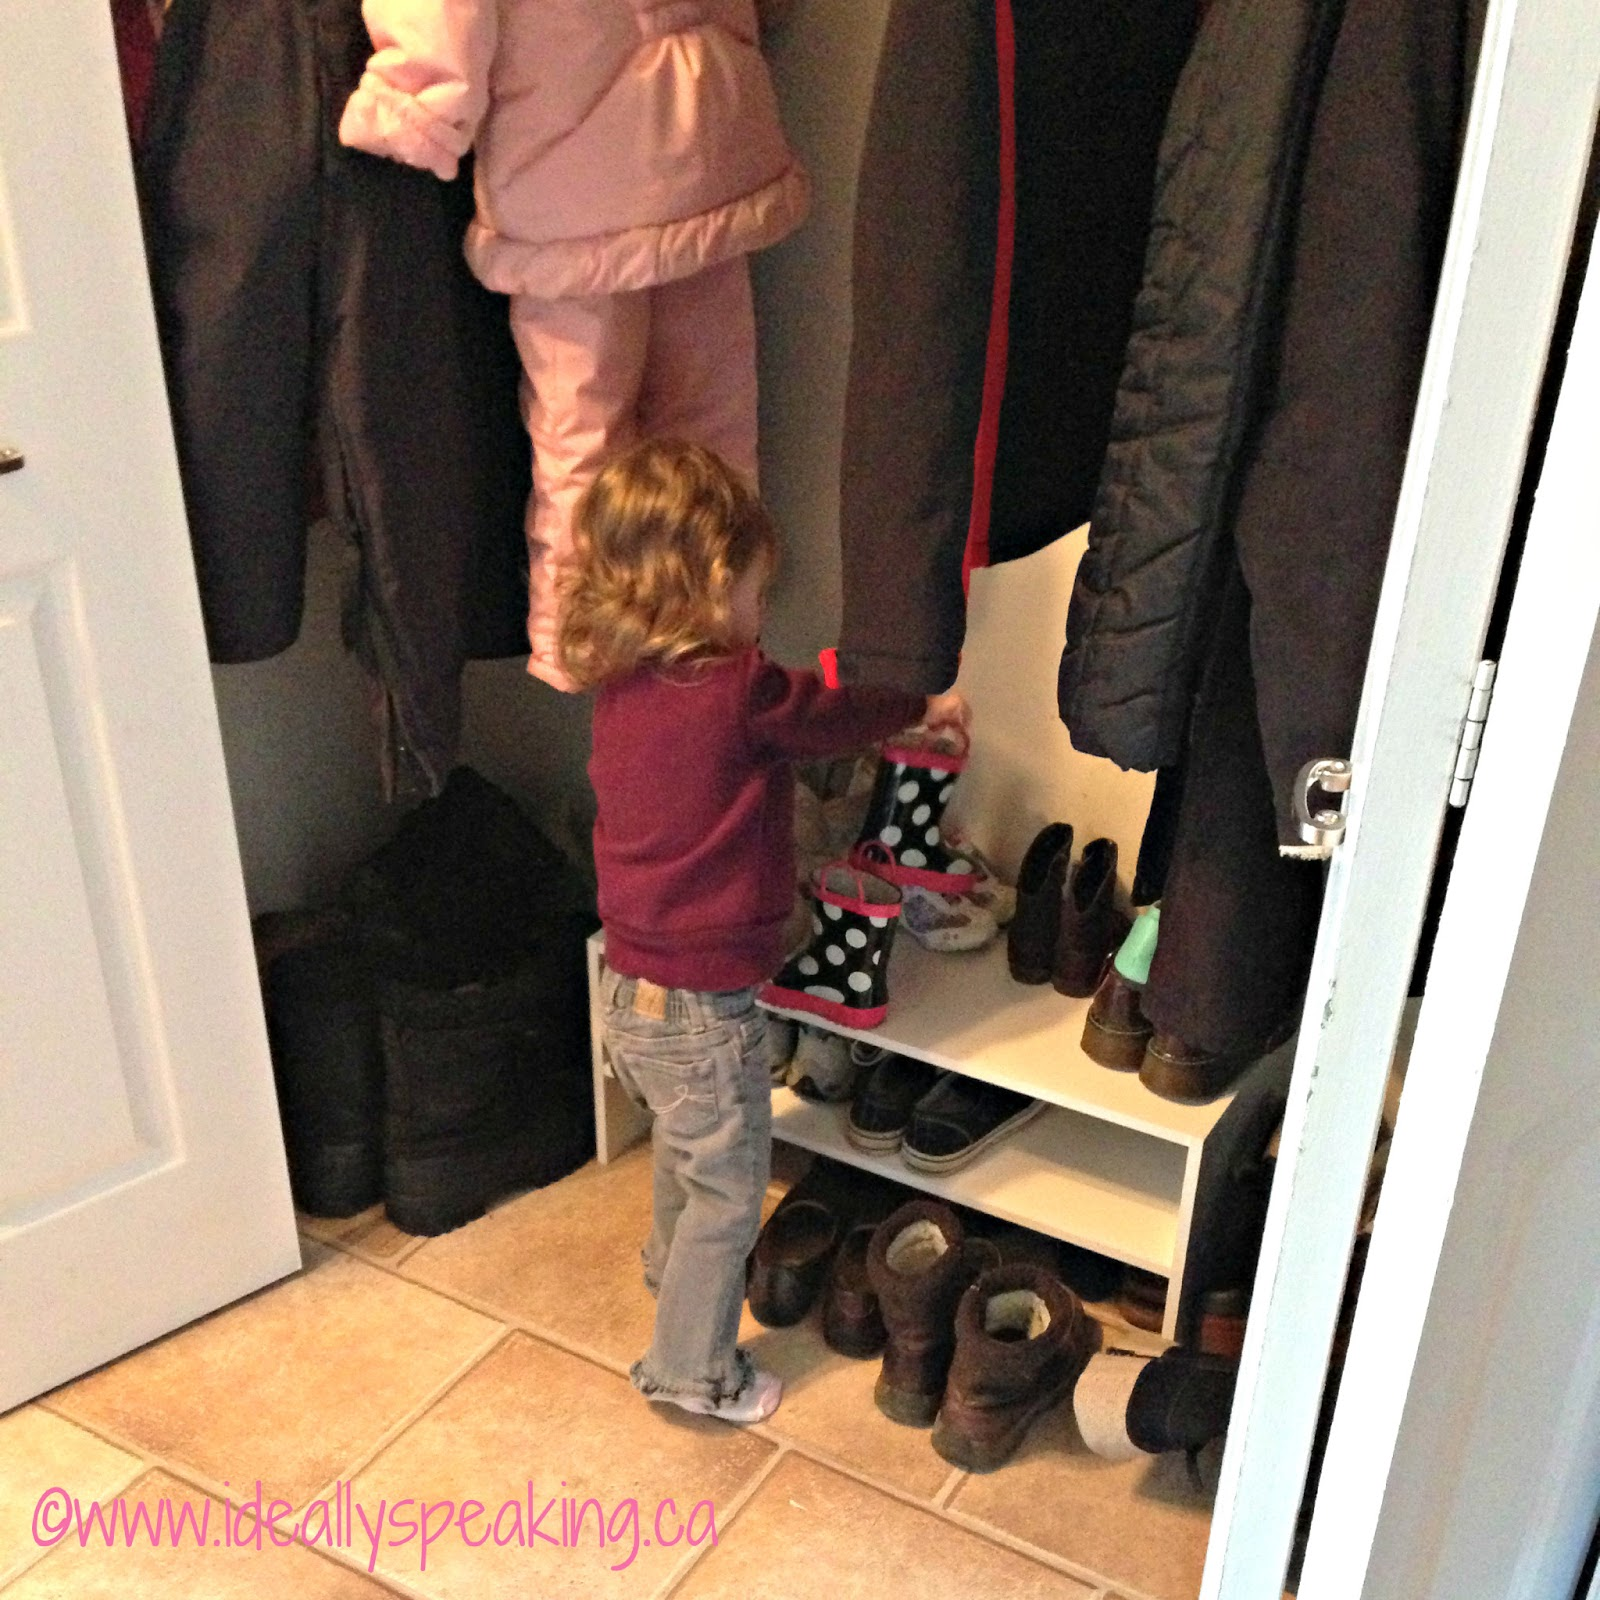 helpful toddler, toddler helping out around house, parenting a toddler, Canadian mom blogger